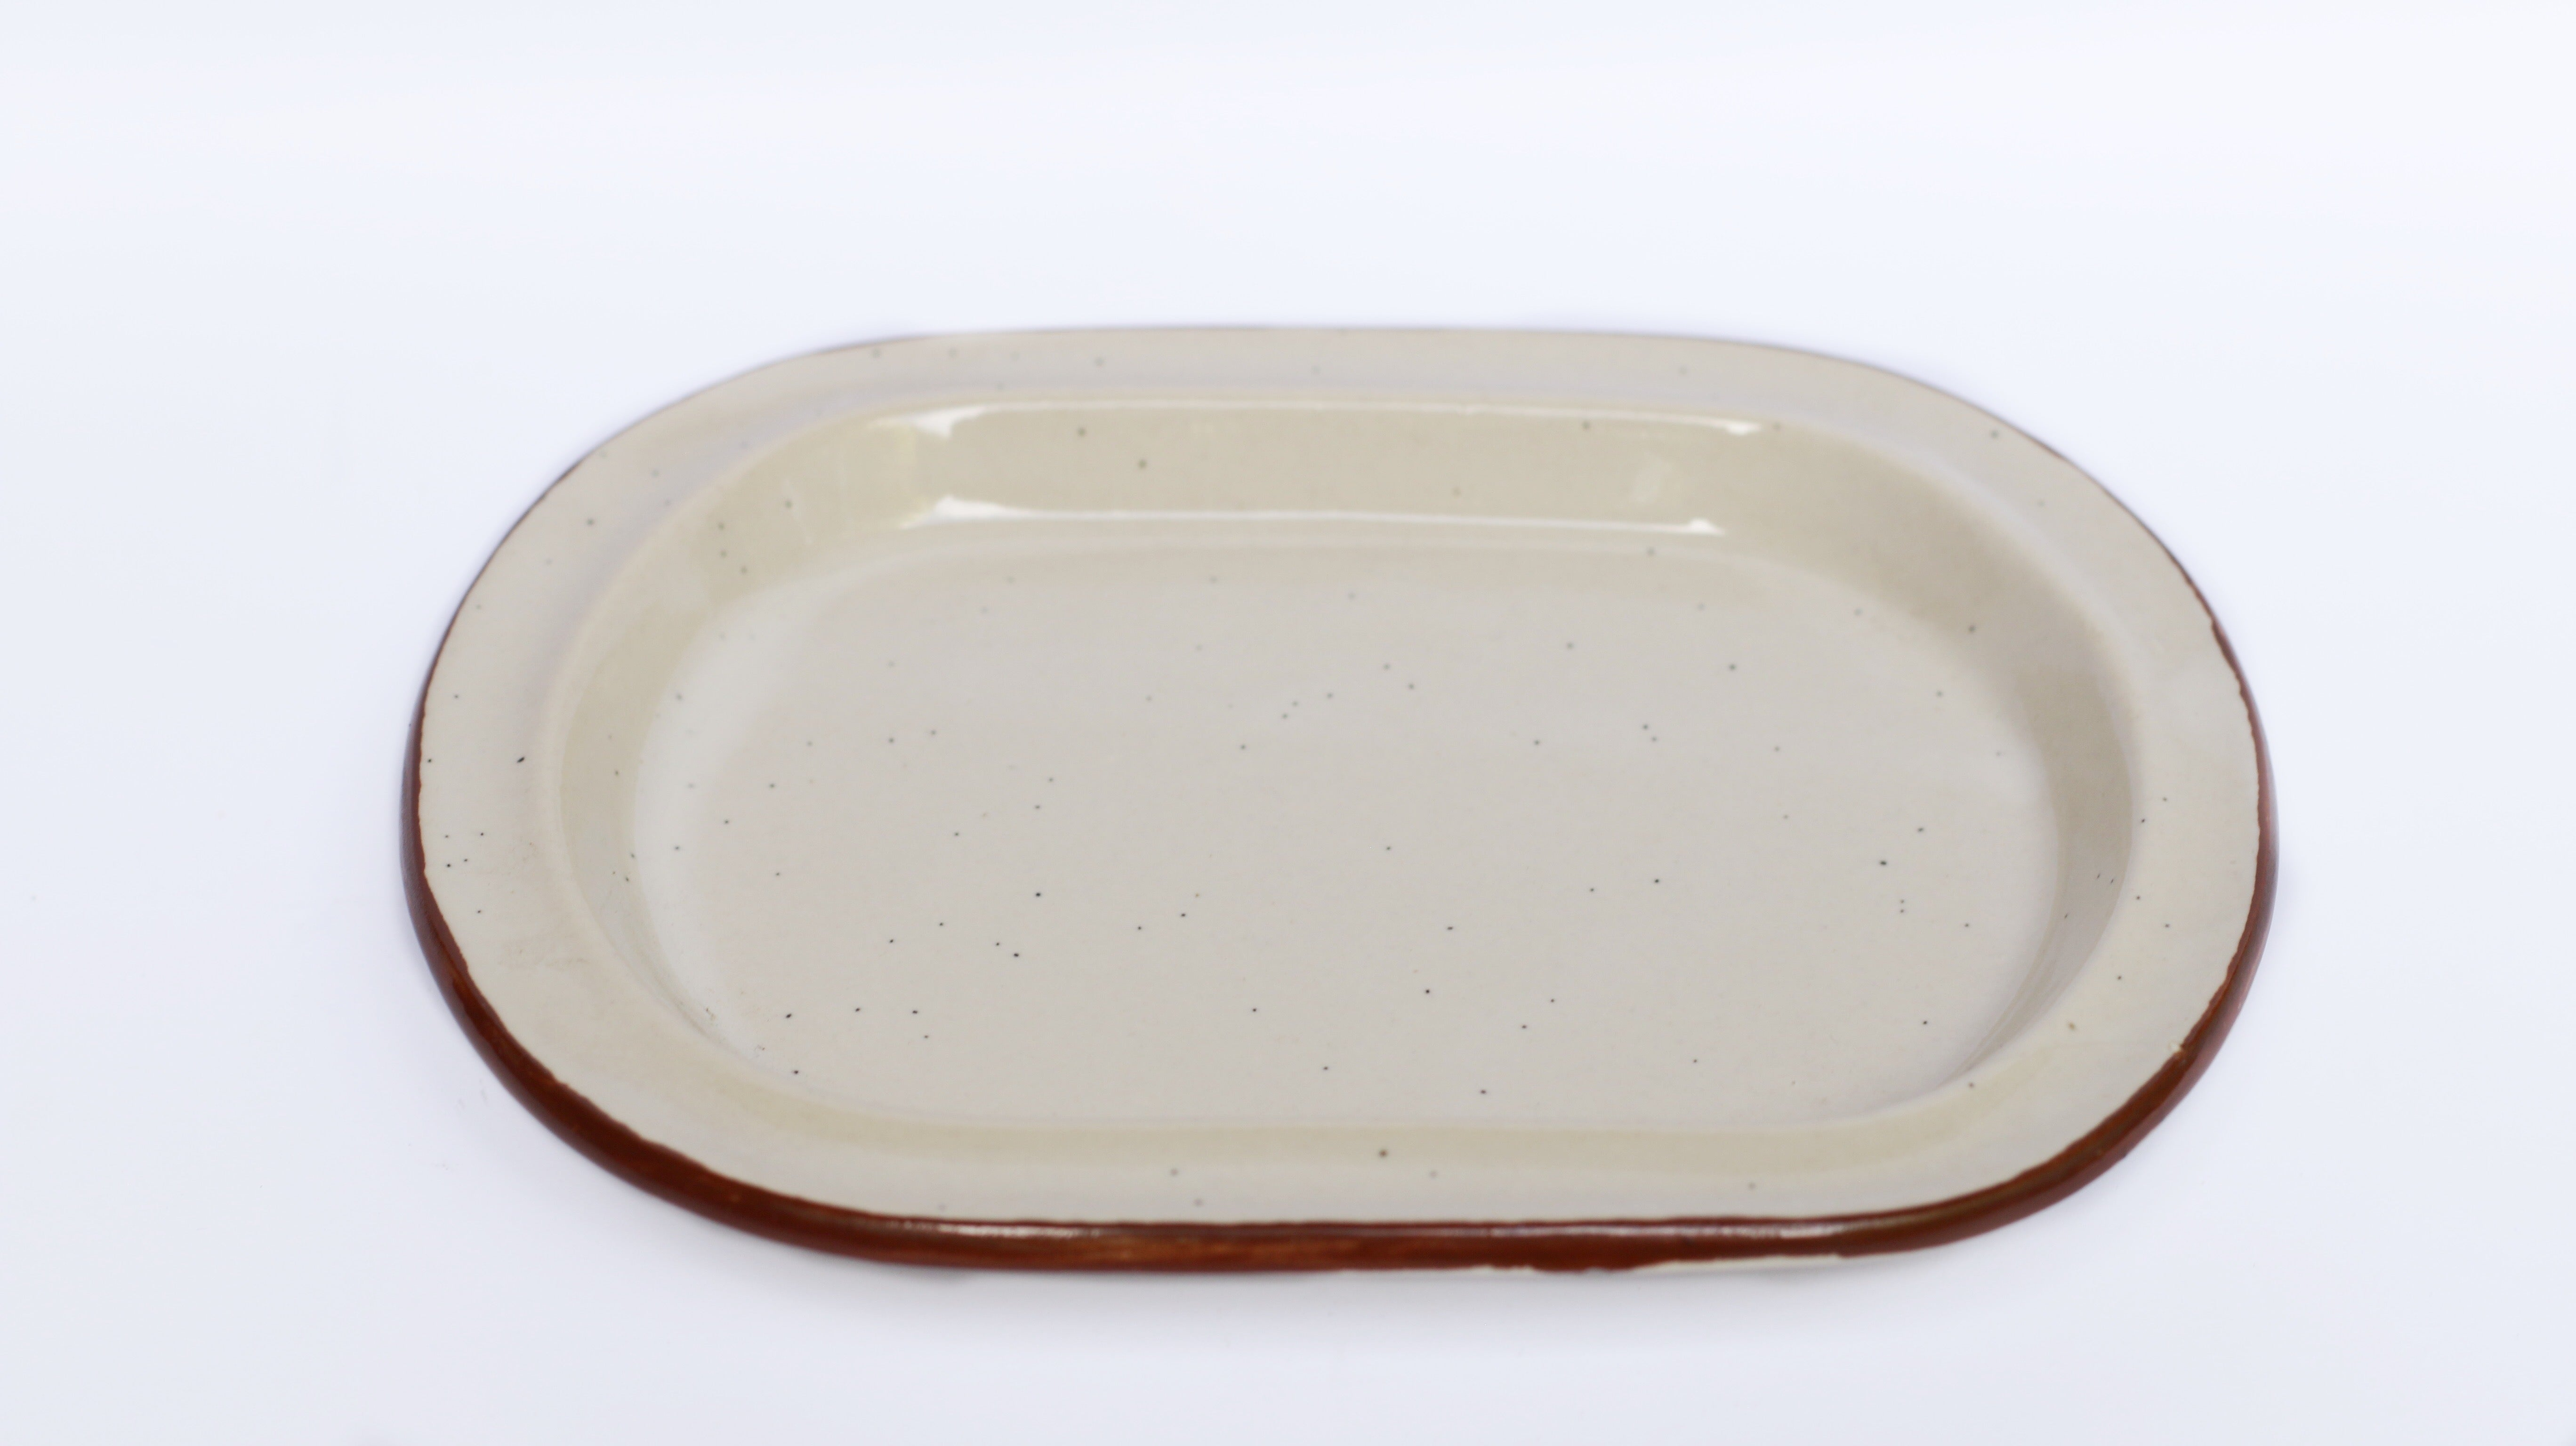 Toasted & Brewed Oval Dish